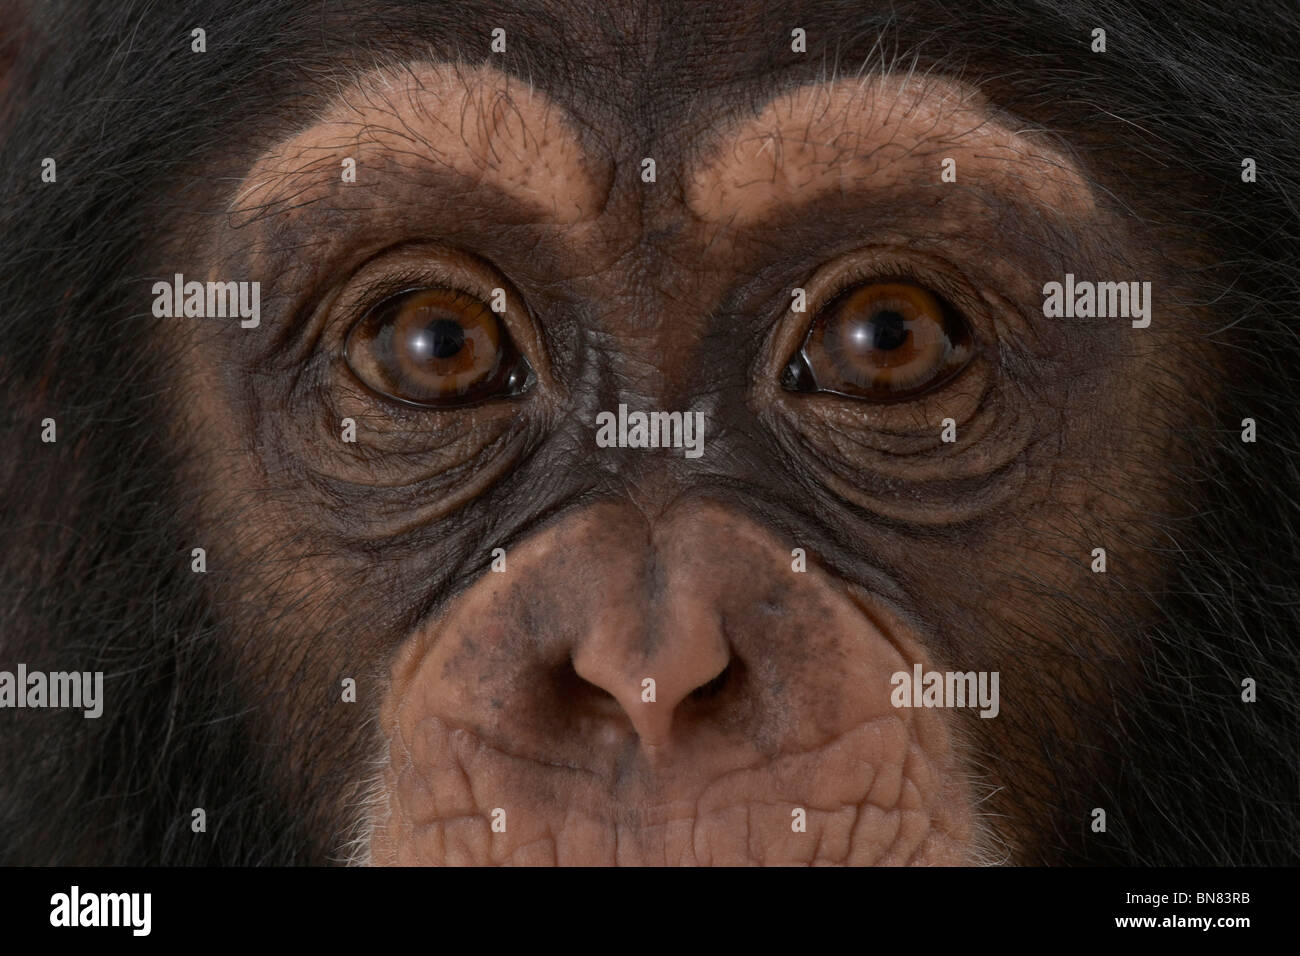 Who are you looking at ? - Stock Image